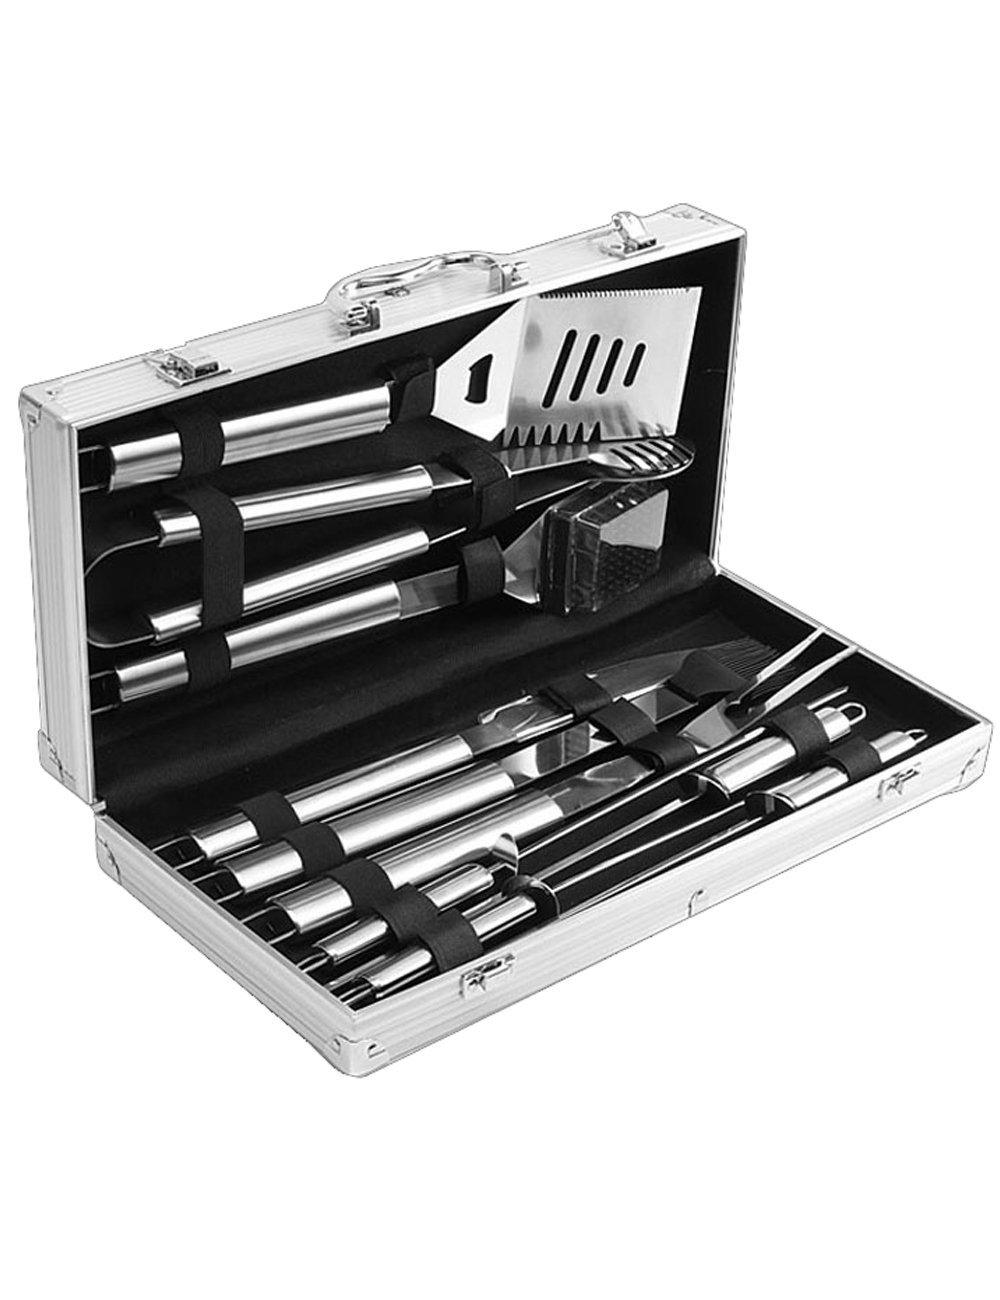 Menschwear BBQ Tool Sets Heavy Duty Stainless Steel Barbecue Accessories Aluminum Case Grill Tools Set (10-Piece) 6 Professional grilling set: grill shovel*1 , fork*1 , knife*1 , tongs*1 , silicone basting brush*1 , grill cleaning brush*1 , skewers*4 . Shovel has a razor sharp serrated edge on one side for easy cutting of meat, a meat tenderizer on the other side, and a built-in bottle opener. Durable and easy to clean: All stainless steel, this 10-piece grill set won¡¯t chip, tarnish or rust. Stylish and safe: Extended stainless handles add elegance and keep your hands away from the flames.